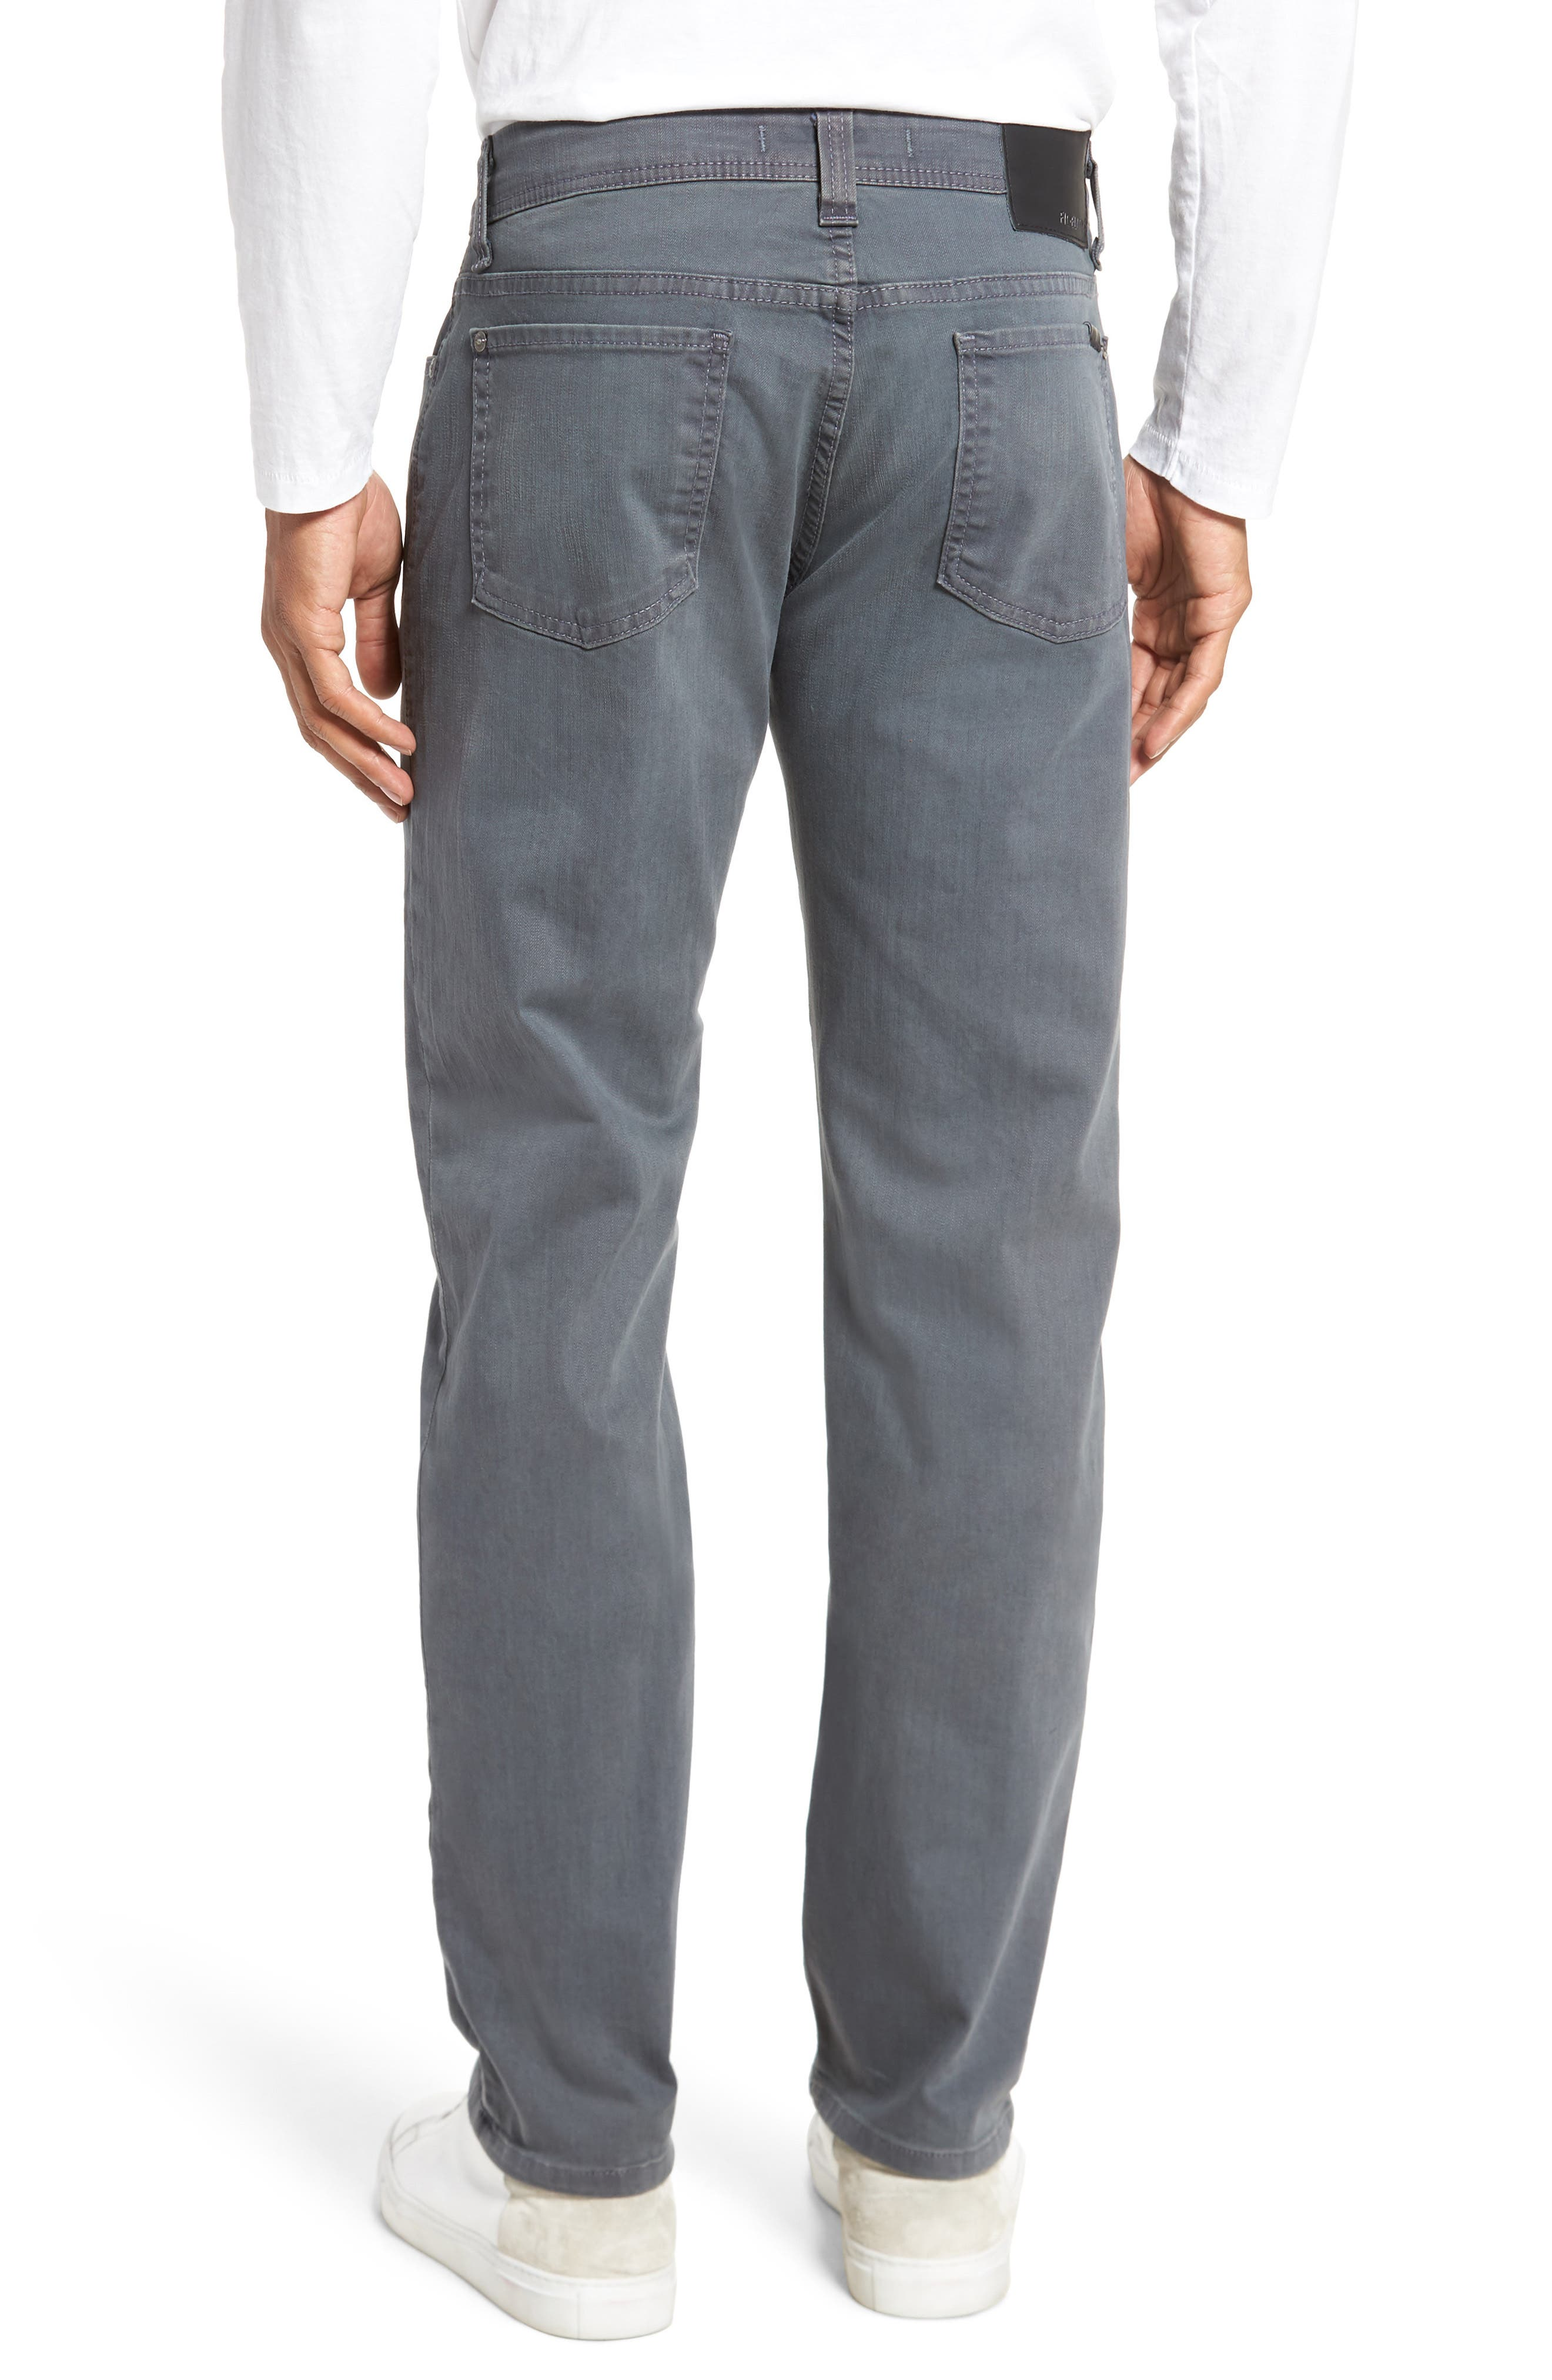 Jimmy Slim Straight Fit Jeans,                             Alternate thumbnail 2, color,                             020